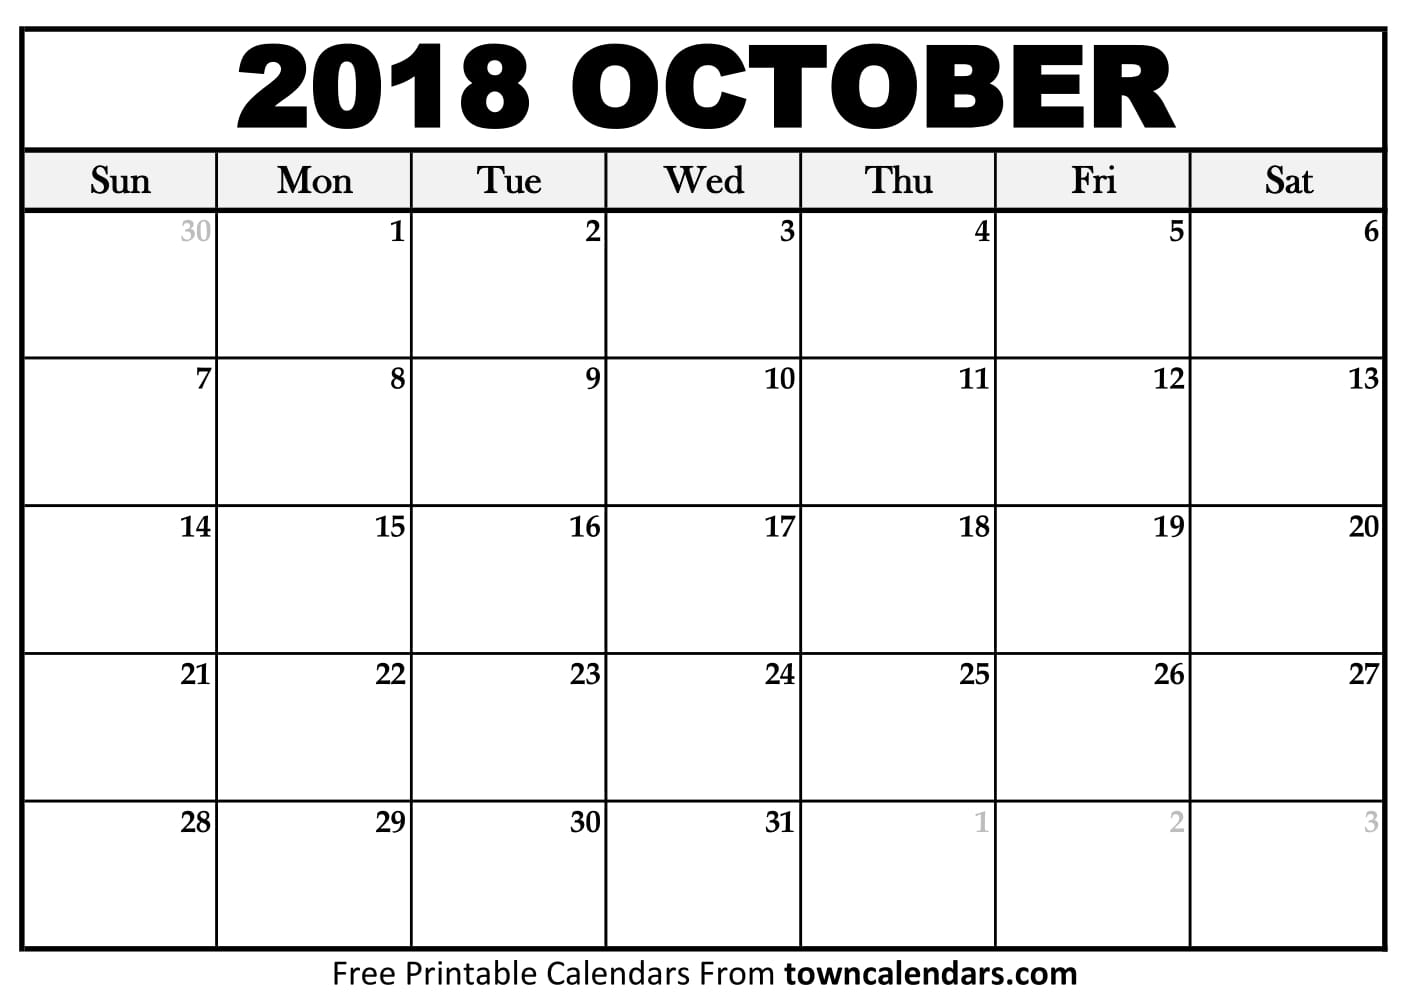 Printable October 2018 Calendar Towncalendars